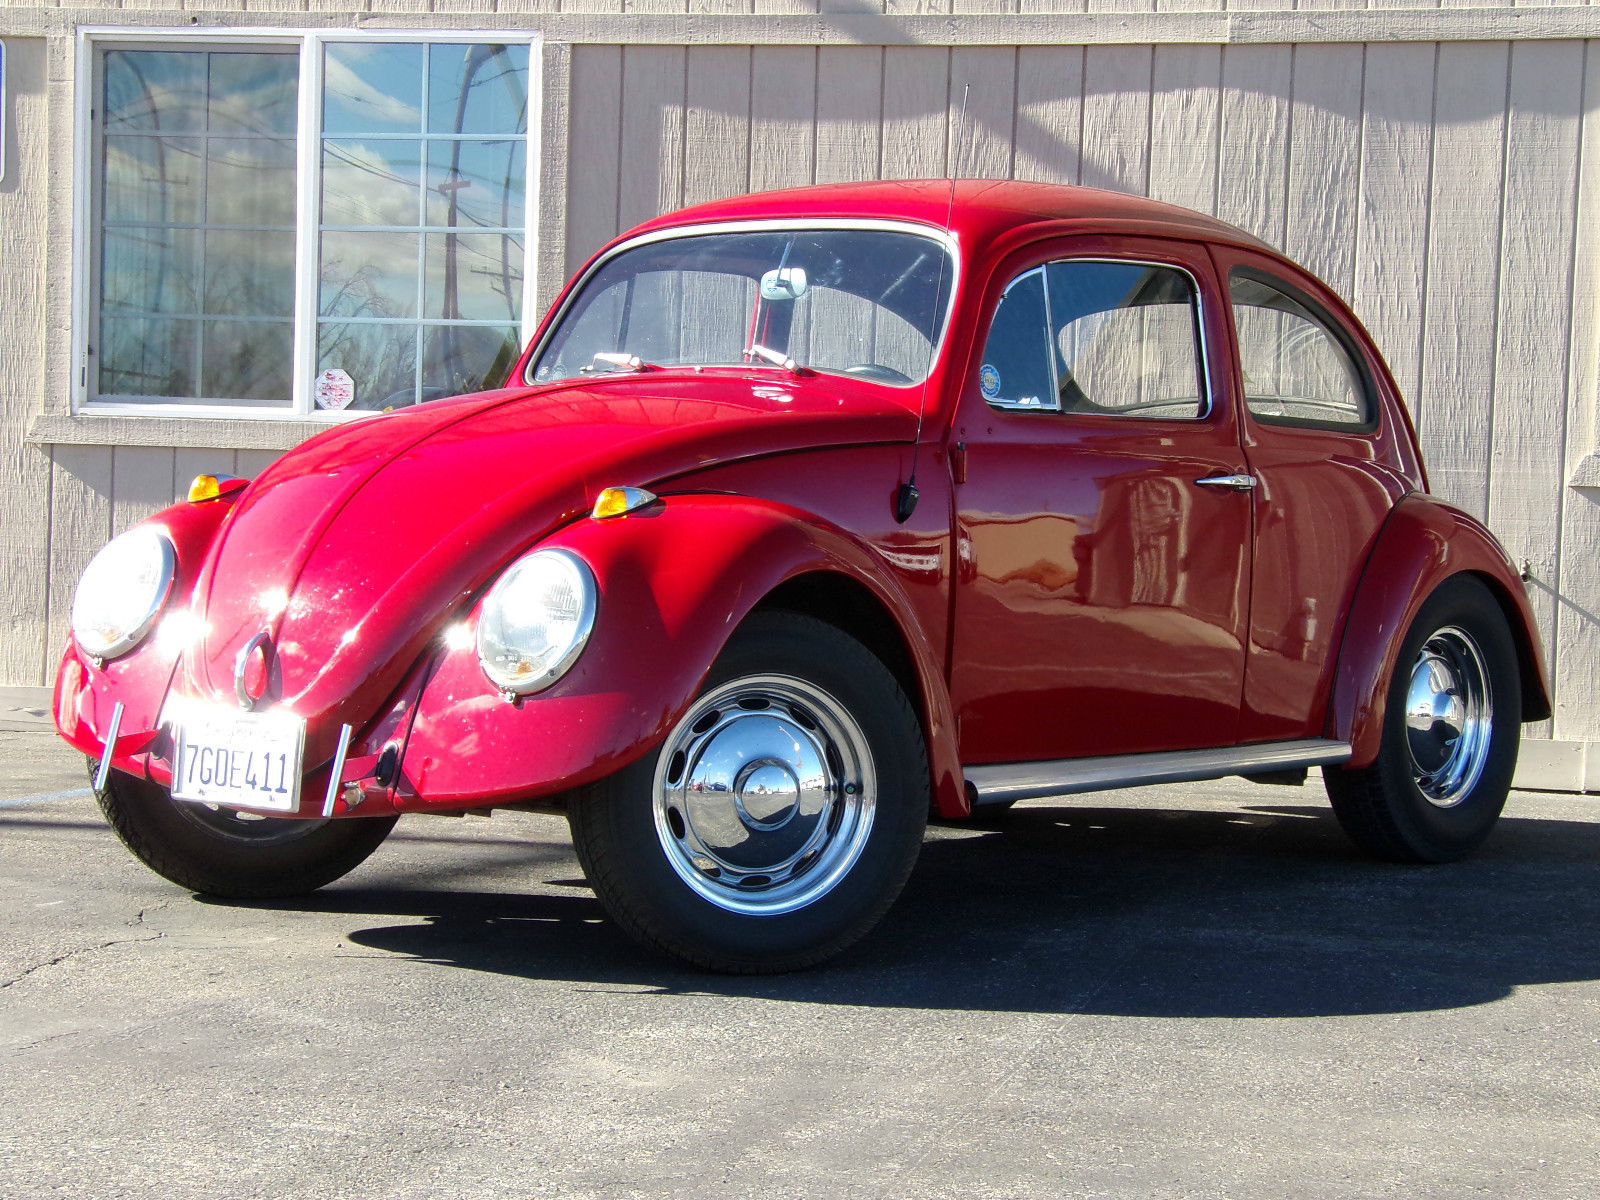 1962 vw beetle classic red classic volkswagen beetle classic 1962 for sale. Black Bedroom Furniture Sets. Home Design Ideas